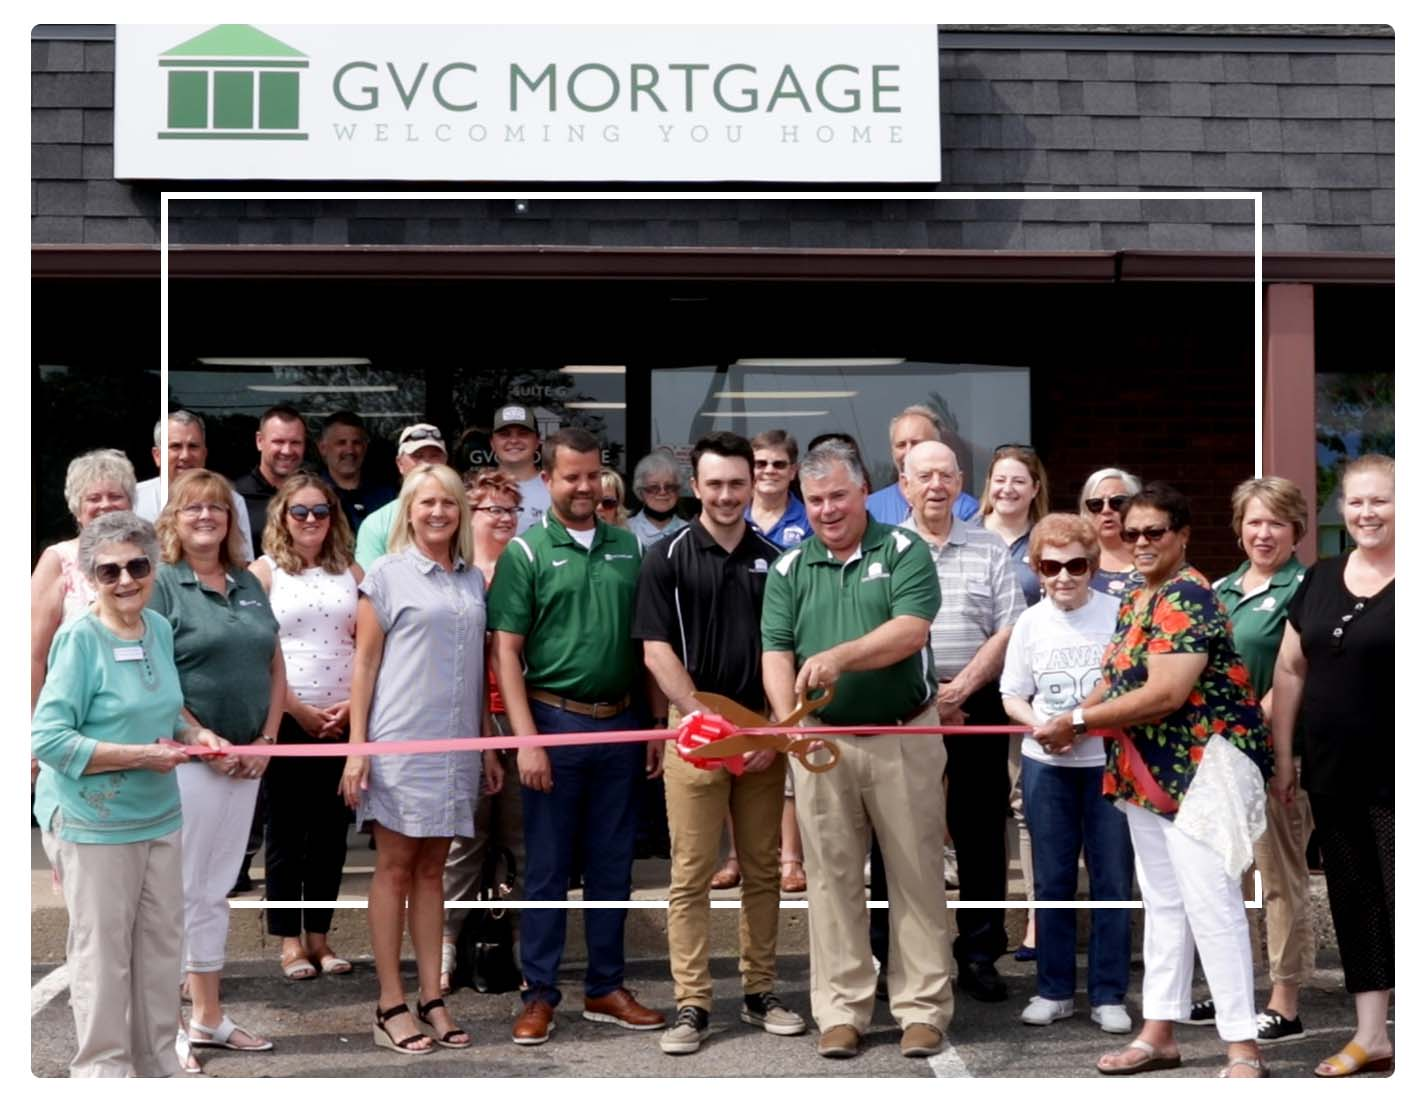 GVC Mortgage has more than 30 branch locations and is ready to serve you